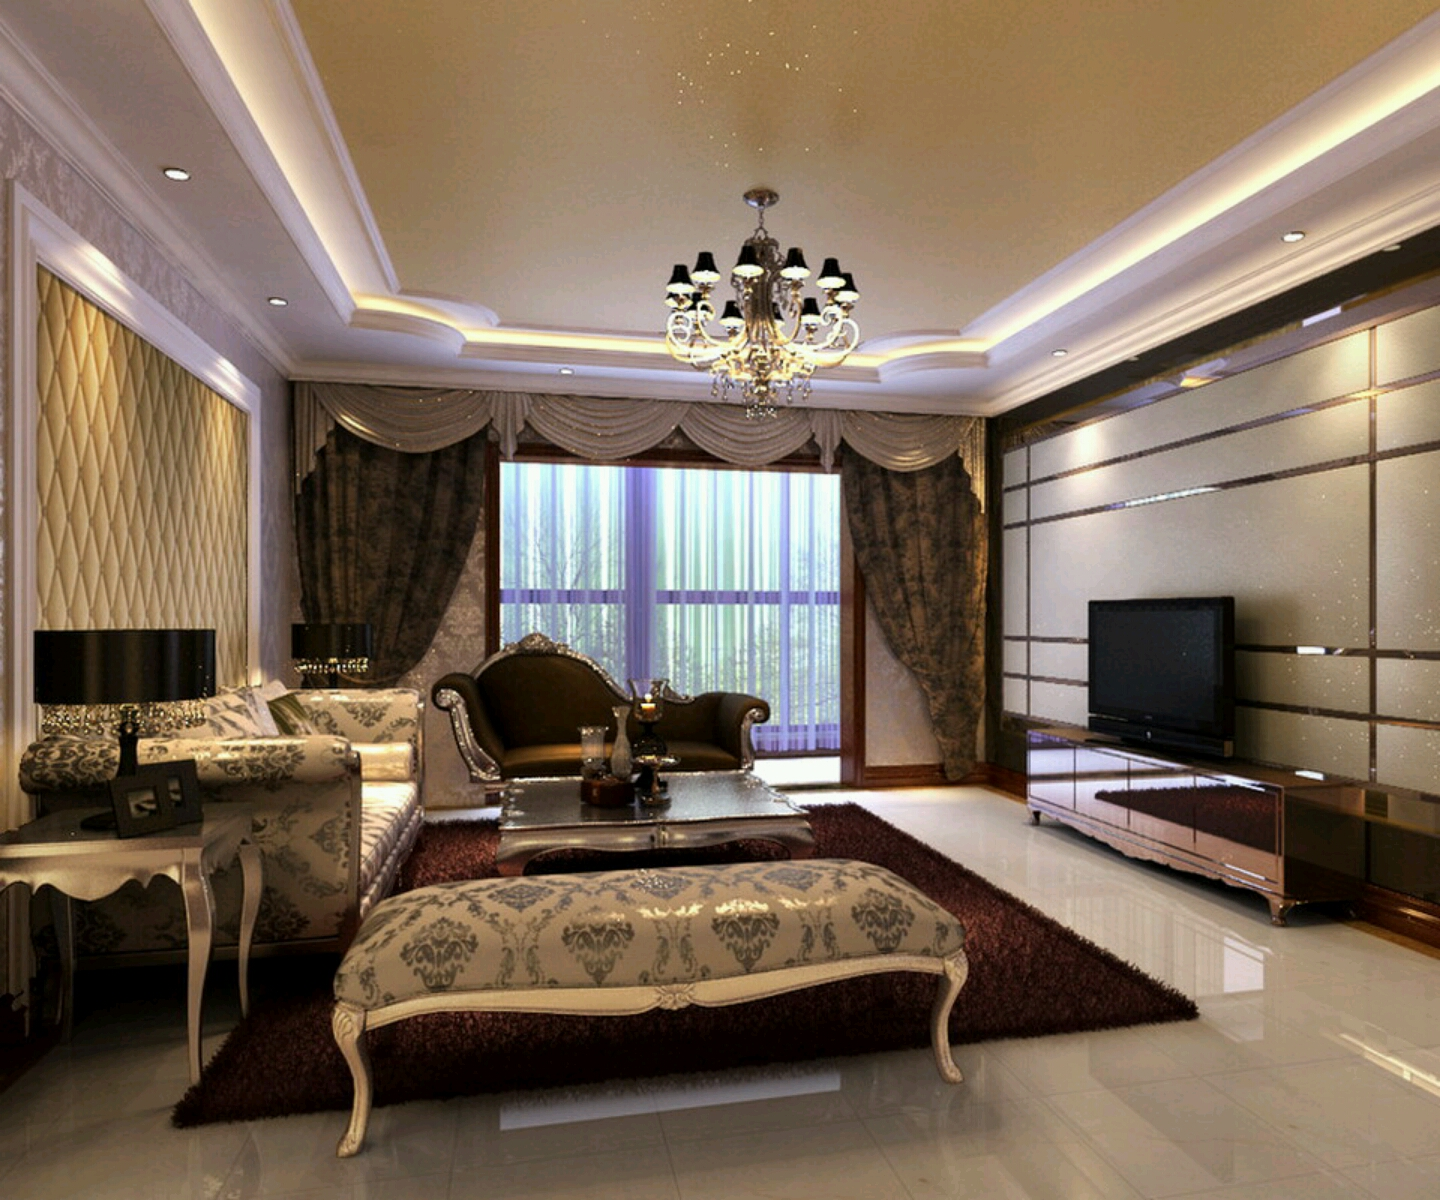 Interior decorating ideas living rooms dream house for Interior design styles living room